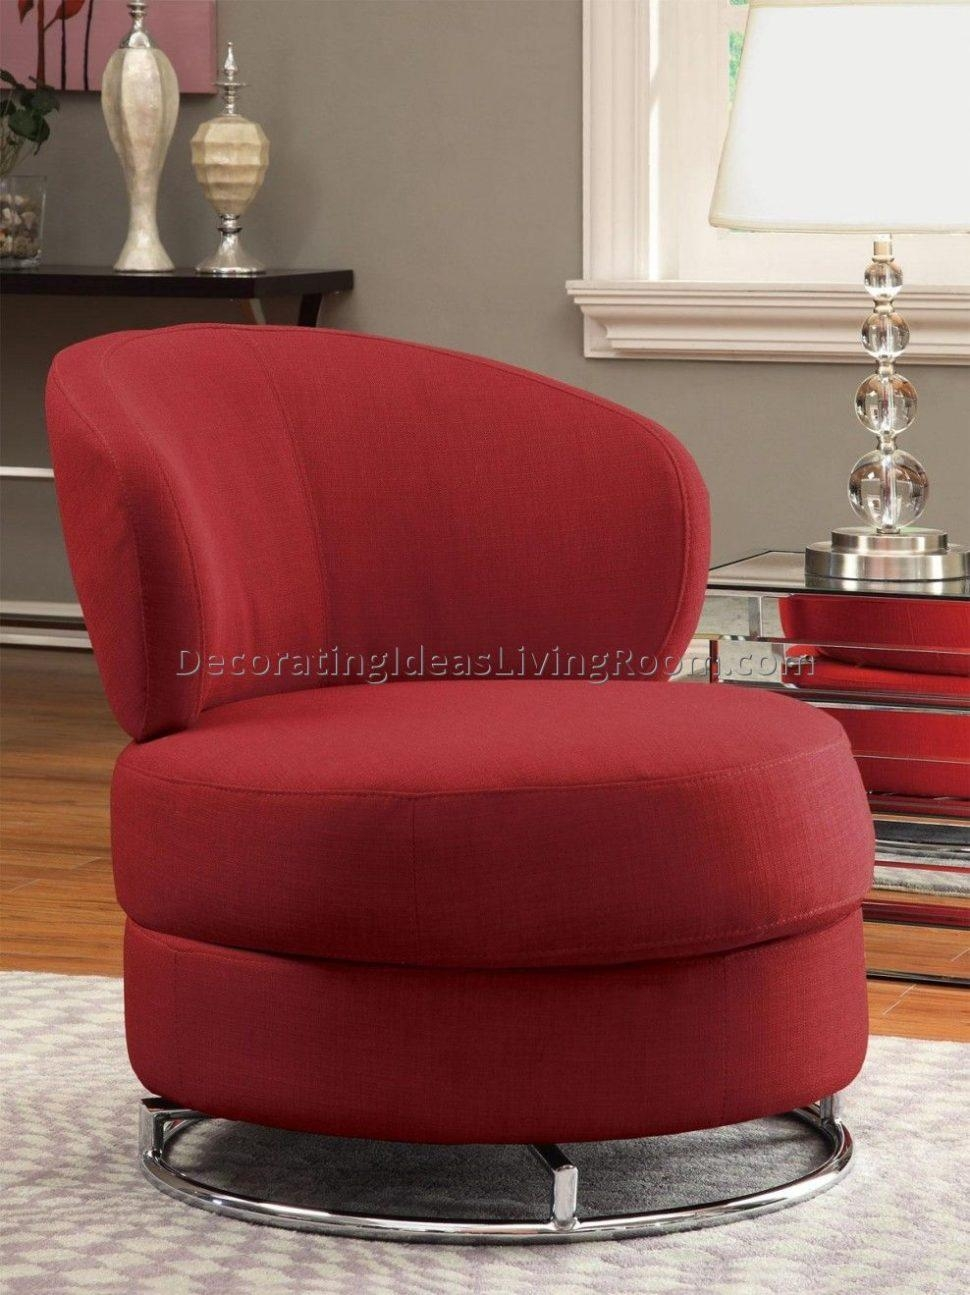 Sofas Center : Stupendous Circle Sofa Chair Pictures Design Round Pertaining To Round Sofa Chair (View 19 of 20)